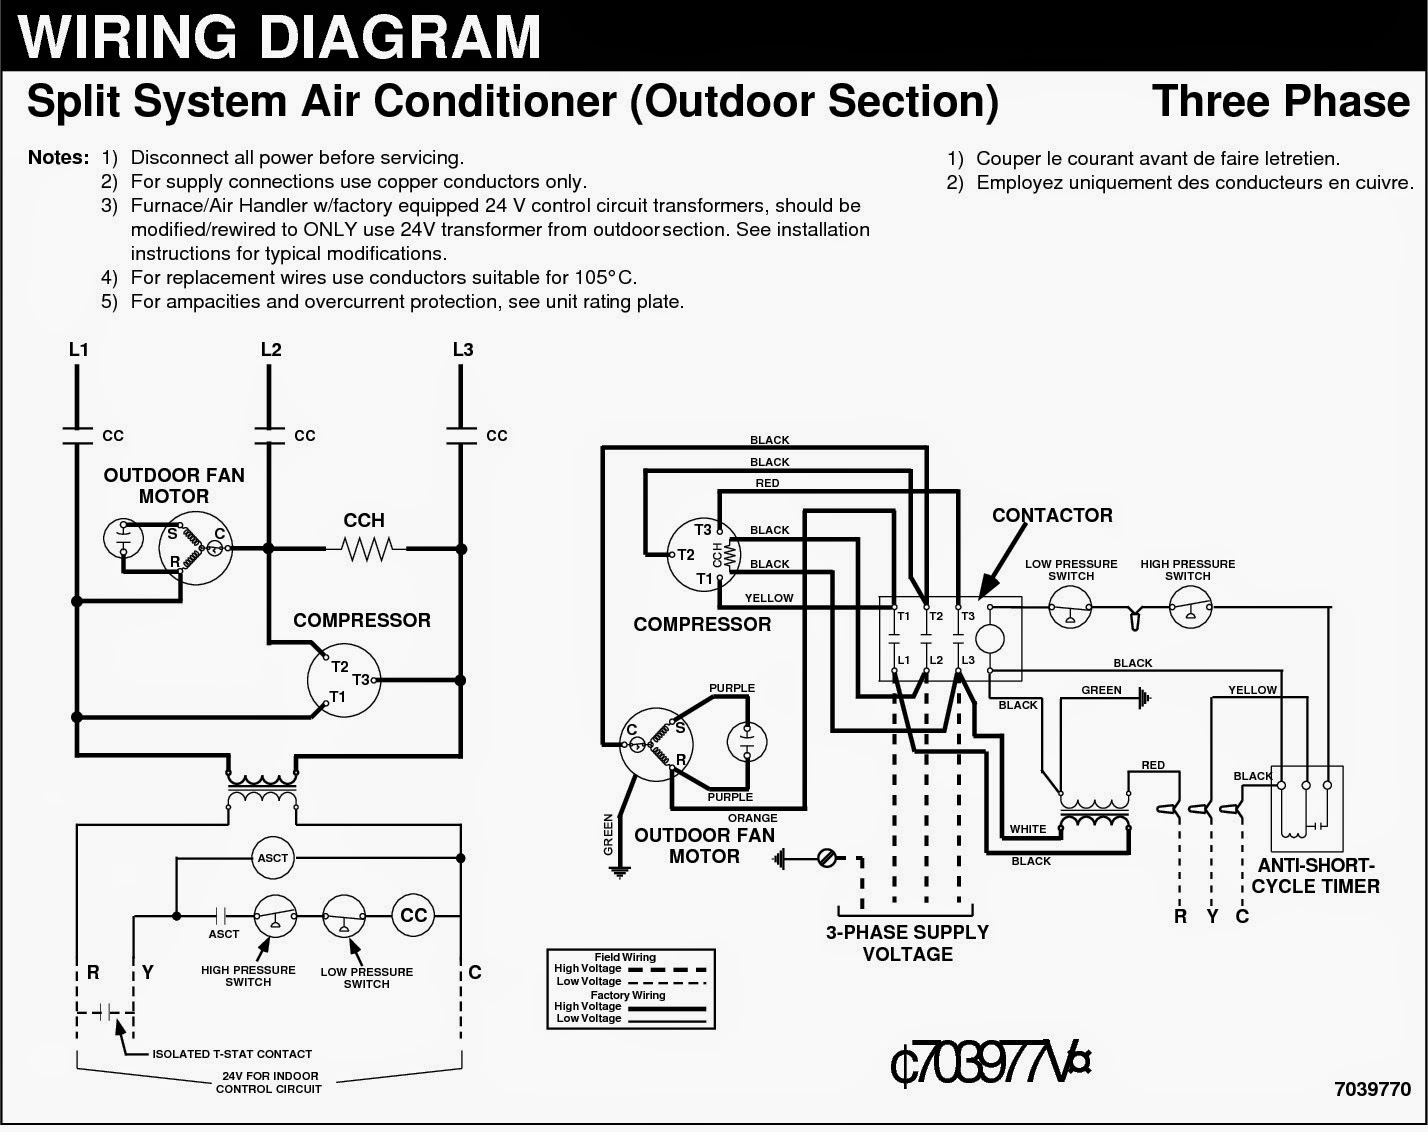 Air Conditioner Control Wiring Diagram - 5.11.danishfashion-mode.de on mini split air conditioner diagram, window air conditioner coil, window air conditioner hose, window ac air conditioning repair, samsung air conditioner wiring diagram, air conditioner schematic wiring diagram, kenmore air conditioner wiring diagram, window air conditioner fuse wire, air conditioner motor wiring diagram, window air conditioner remote control, carrier air conditioner wiring diagram, window air conditioner chassis, portable air conditioner wiring diagram, home air conditioner wiring diagram, window air conditioner control panel, room air conditioner wiring diagram, ge air conditioner wiring diagram, split air conditioner wiring diagram, window air conditioner repair, window air conditioner valves diagram,